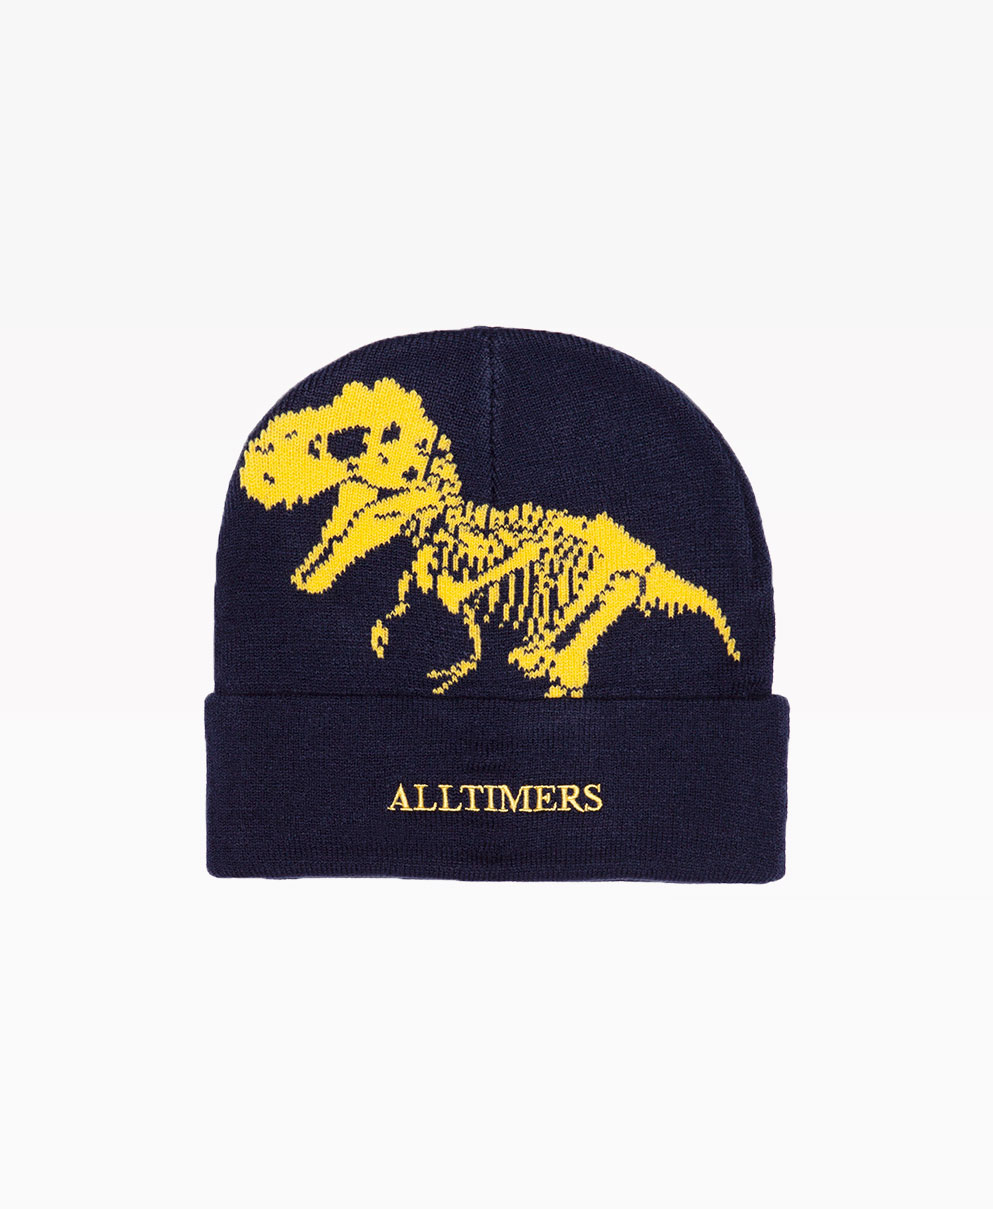 Alltimers Nh Beanie Black Front